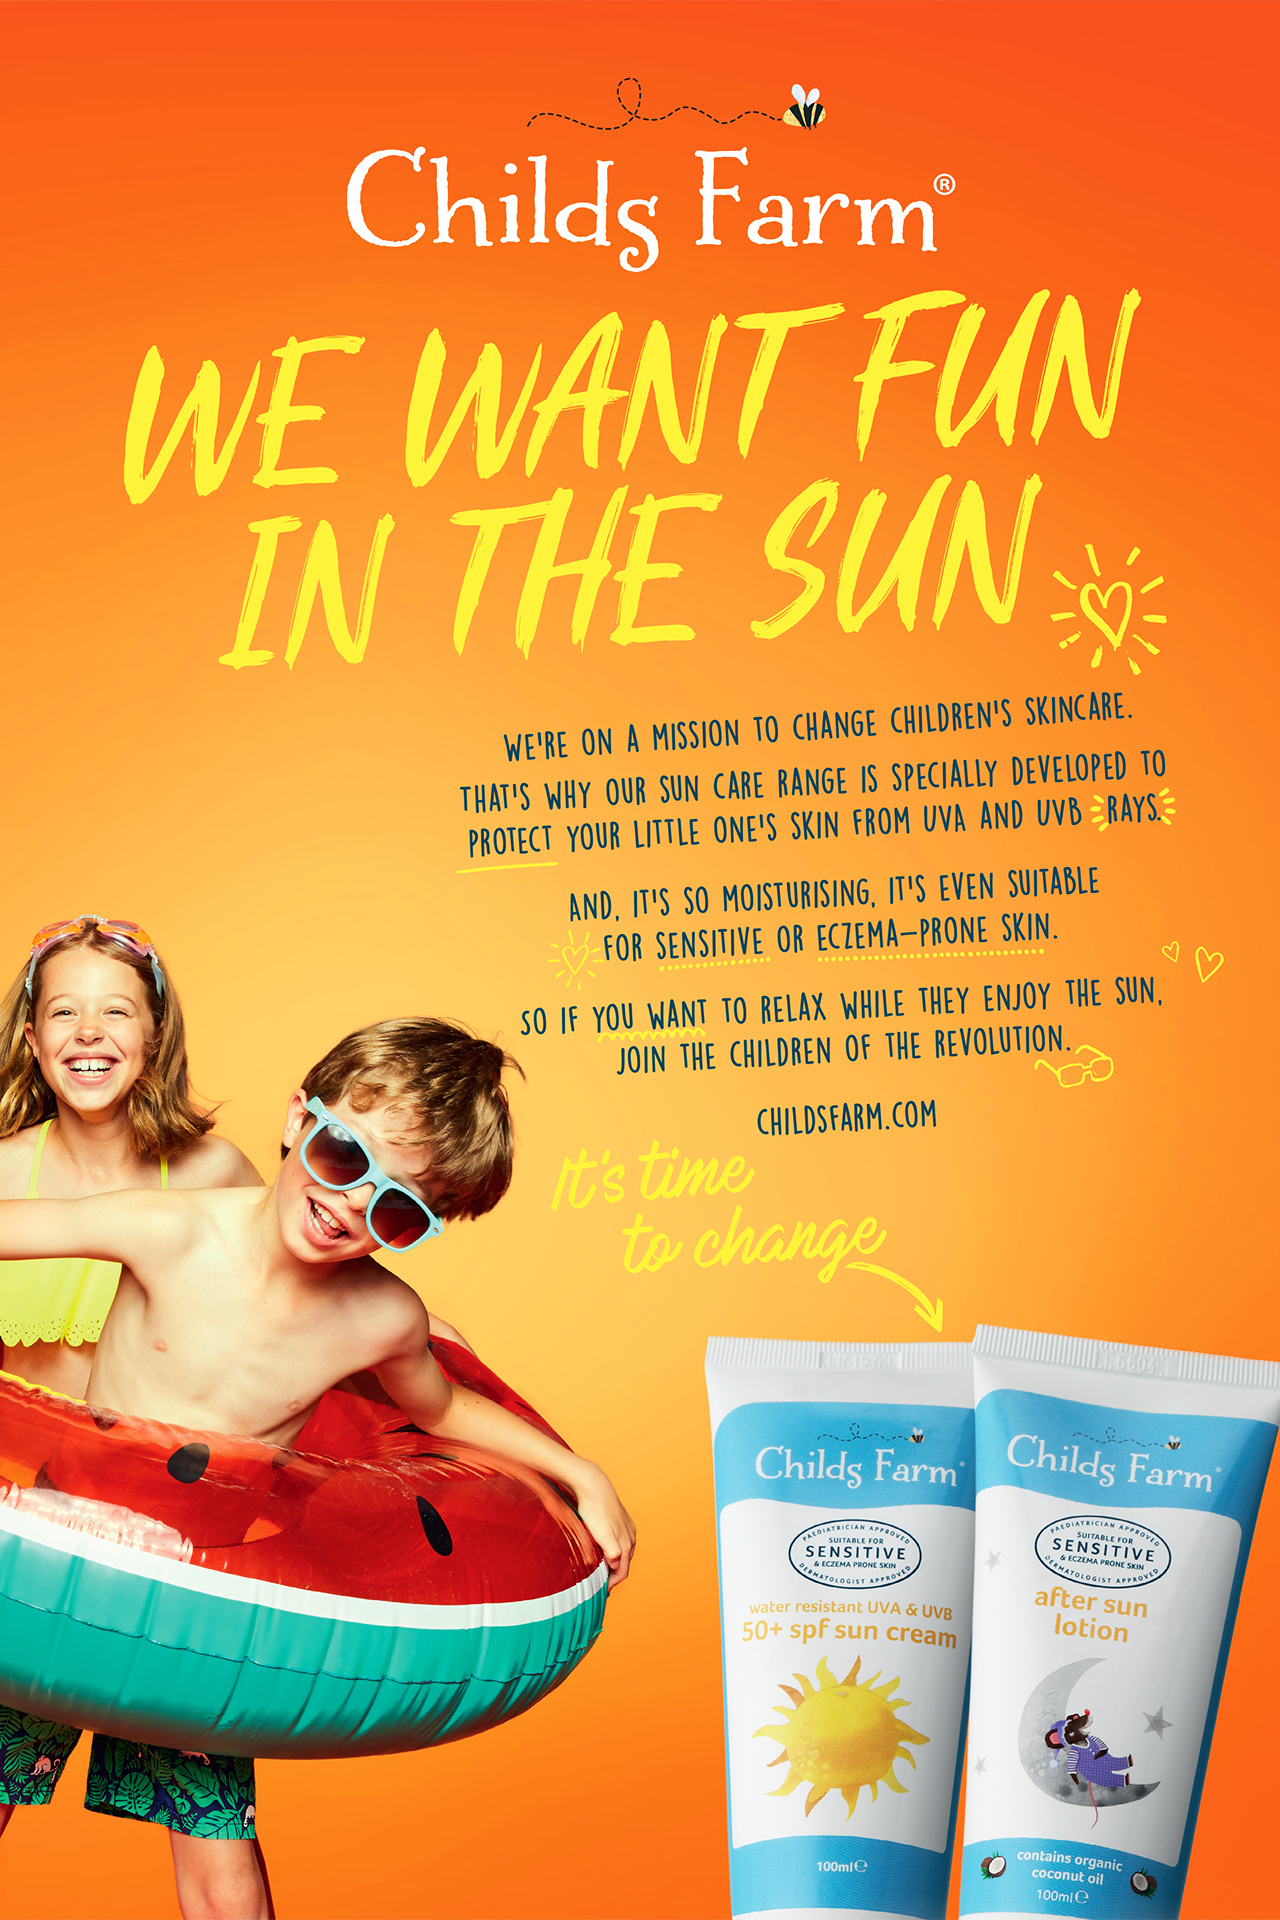 Childs Farm Advert WE WANT FUN IN THE SUN